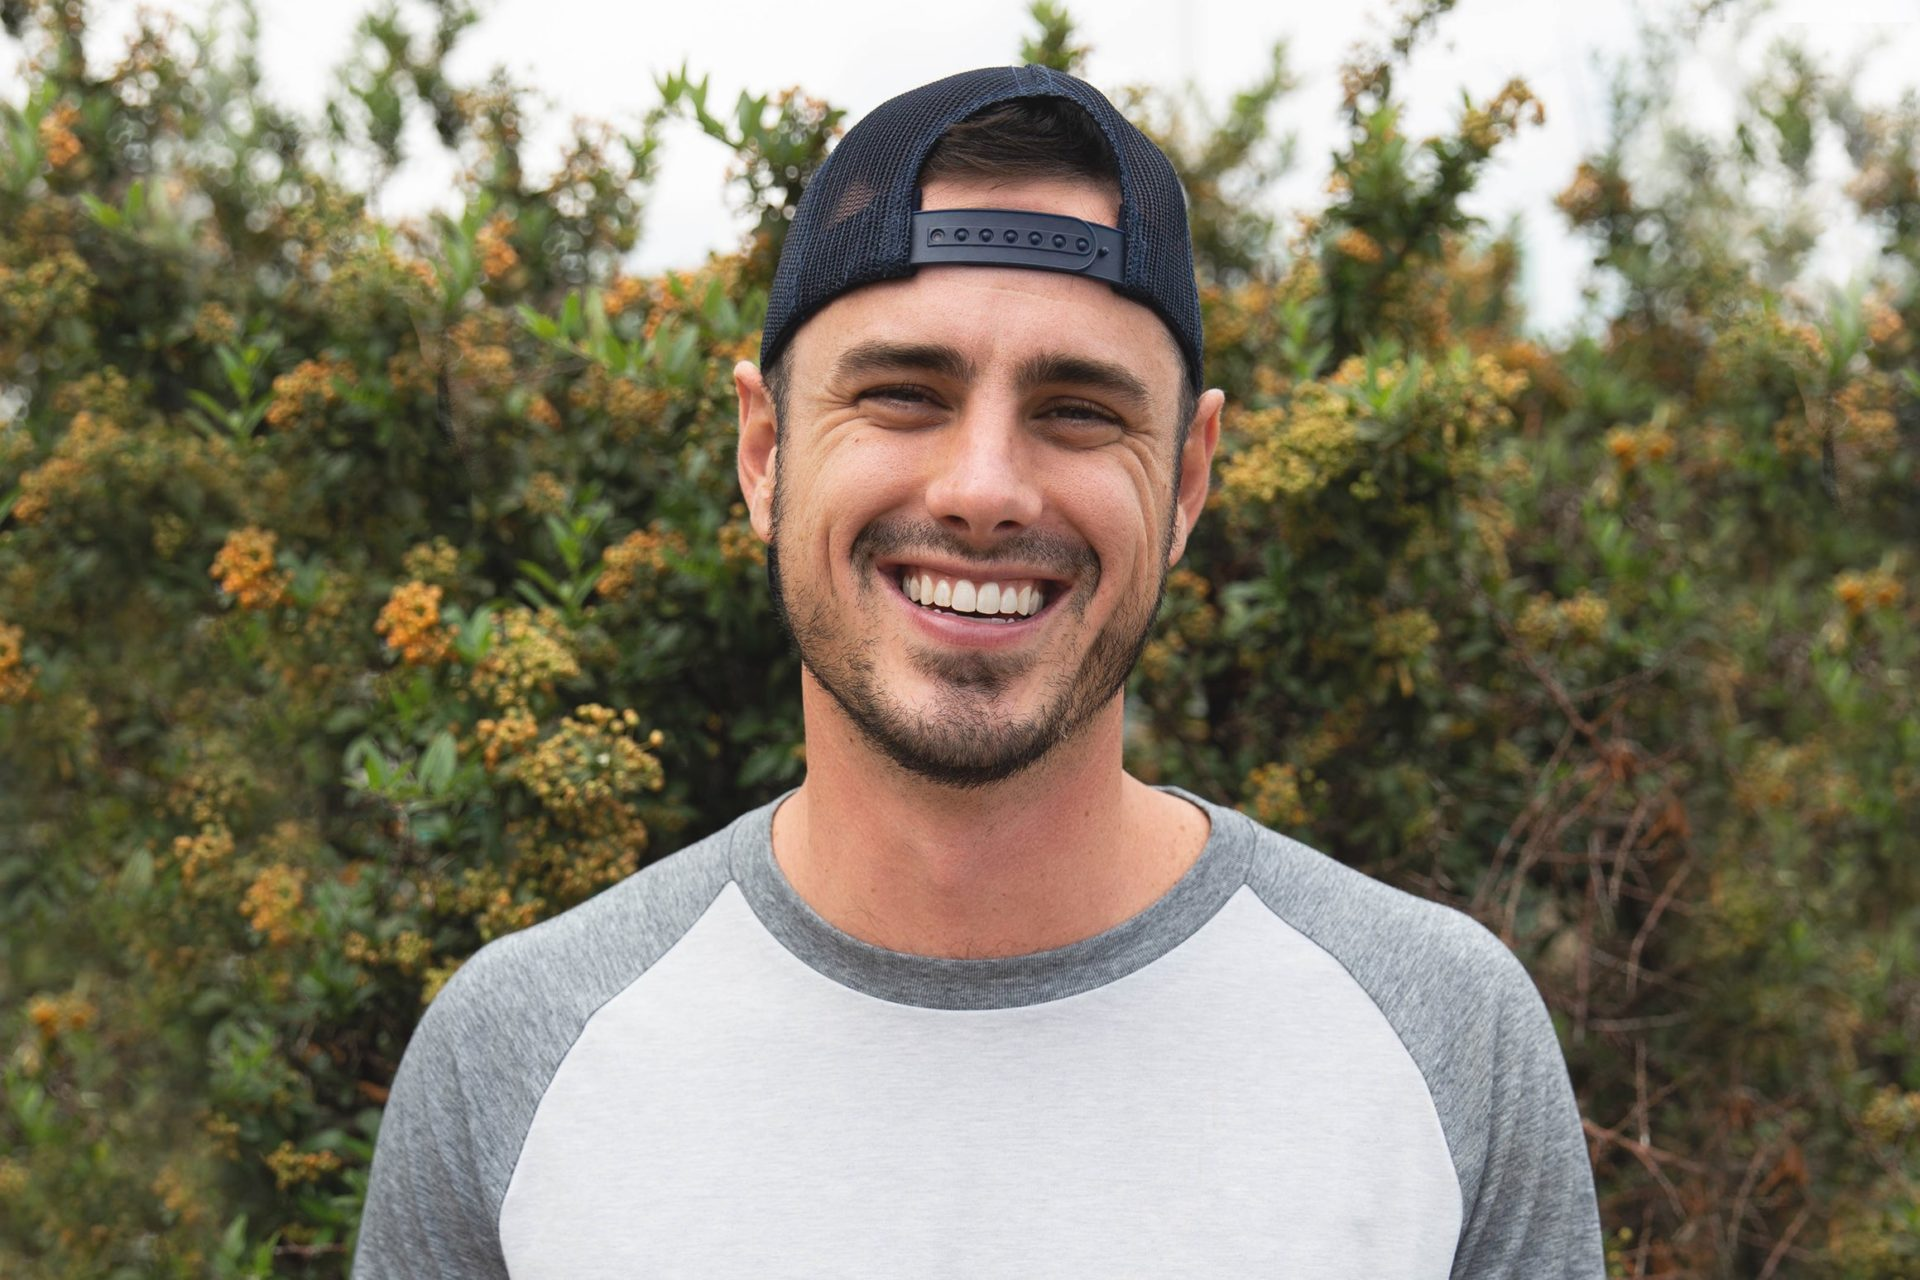 The 31-year old son of father (?) and mother(?) Ben Higgins in 2020 photo. Ben Higgins earned a million dollar salary - leaving the net worth at million in 2020